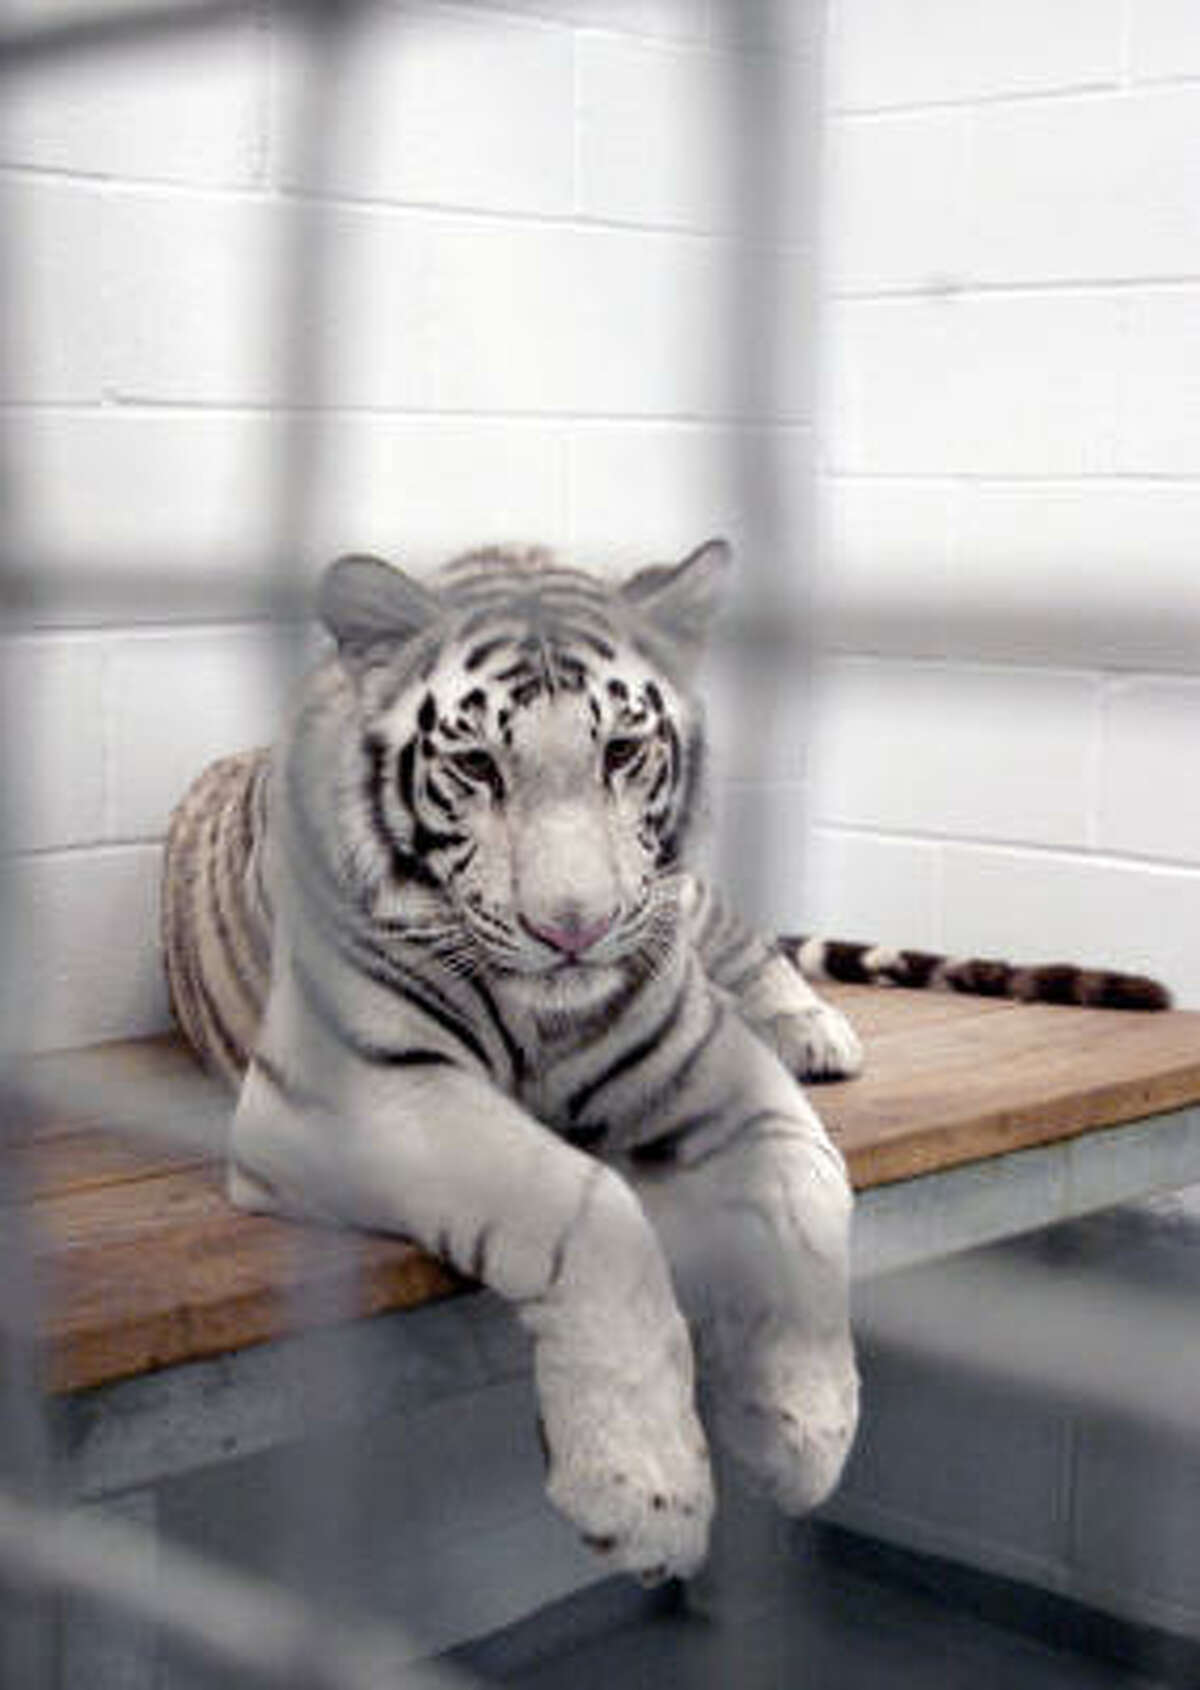 Marina, one of Houston's Downtown Aquarium's four rare white tigers, is seen in a photo from 2008.